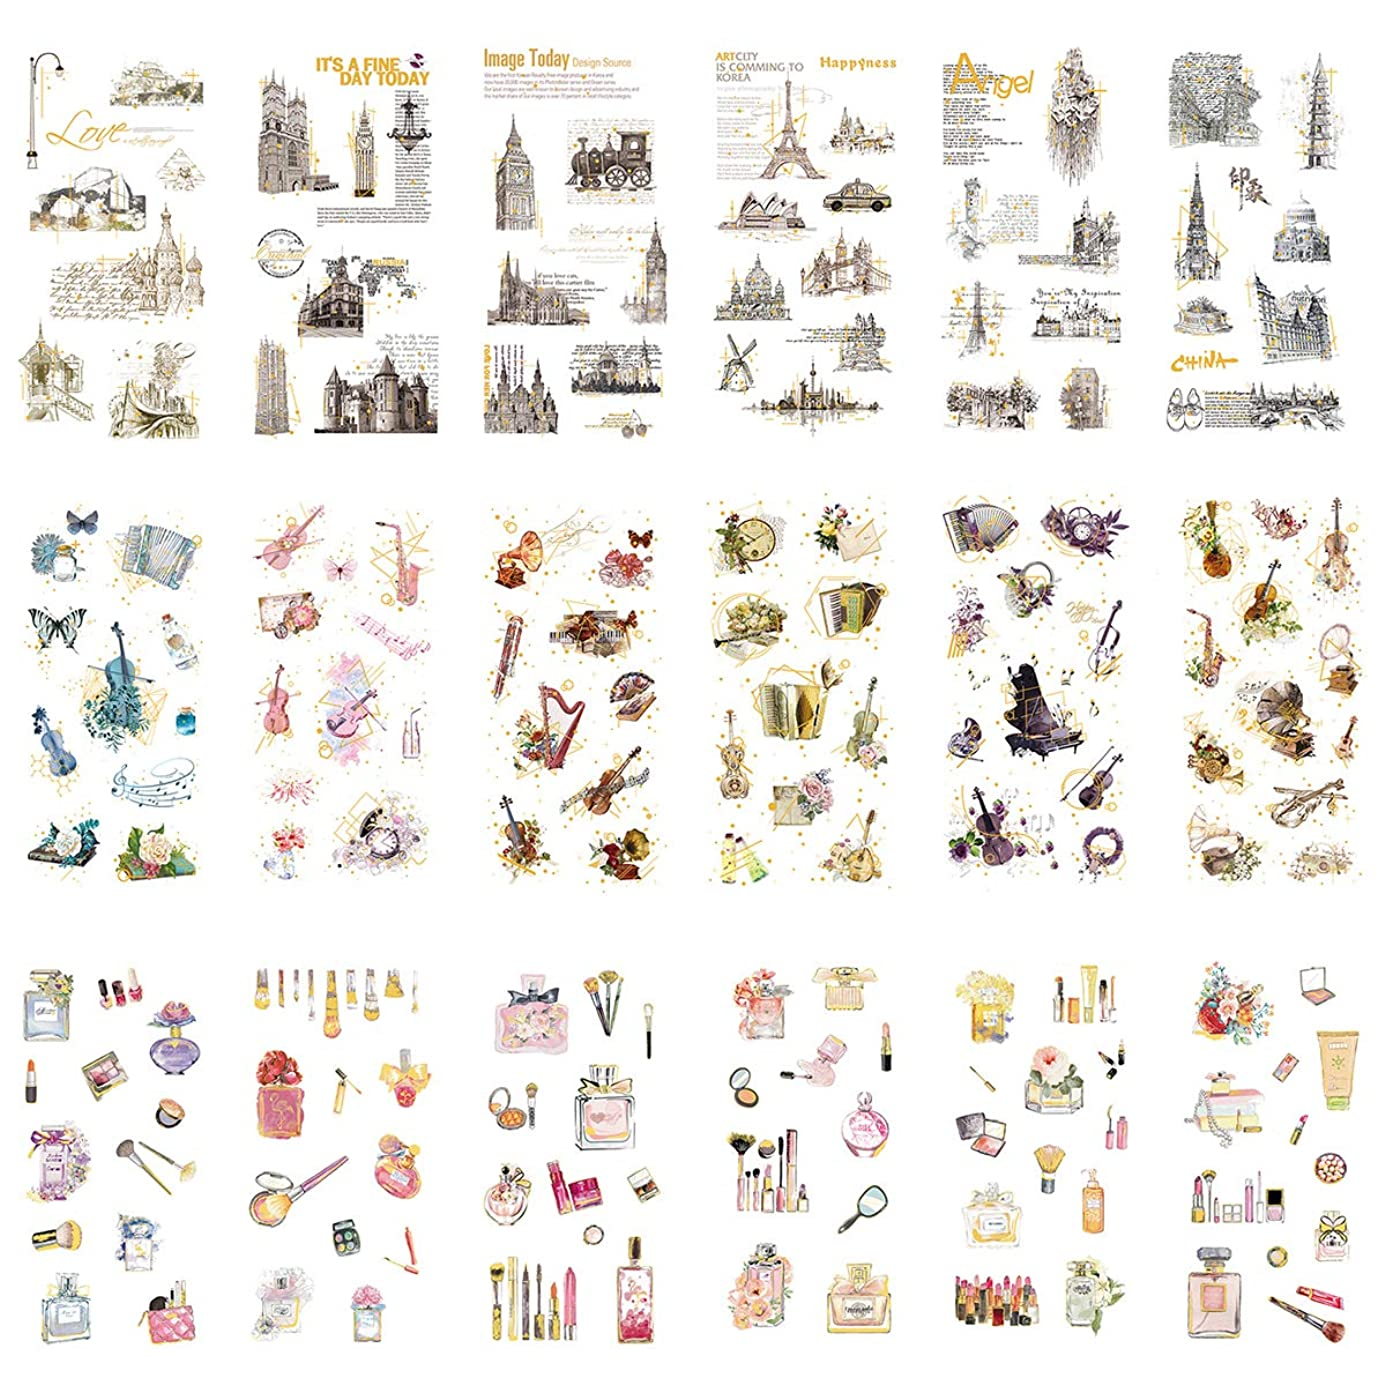 Bronzing Stationery Sticker Set Famous Building Tower Musical Instrument Guitar Violin Accordion Piano Makeup Tool Scrapbooking Decorative Stickers Diary Book Notebook Planner Journal DIY Label (A) gbs9017209